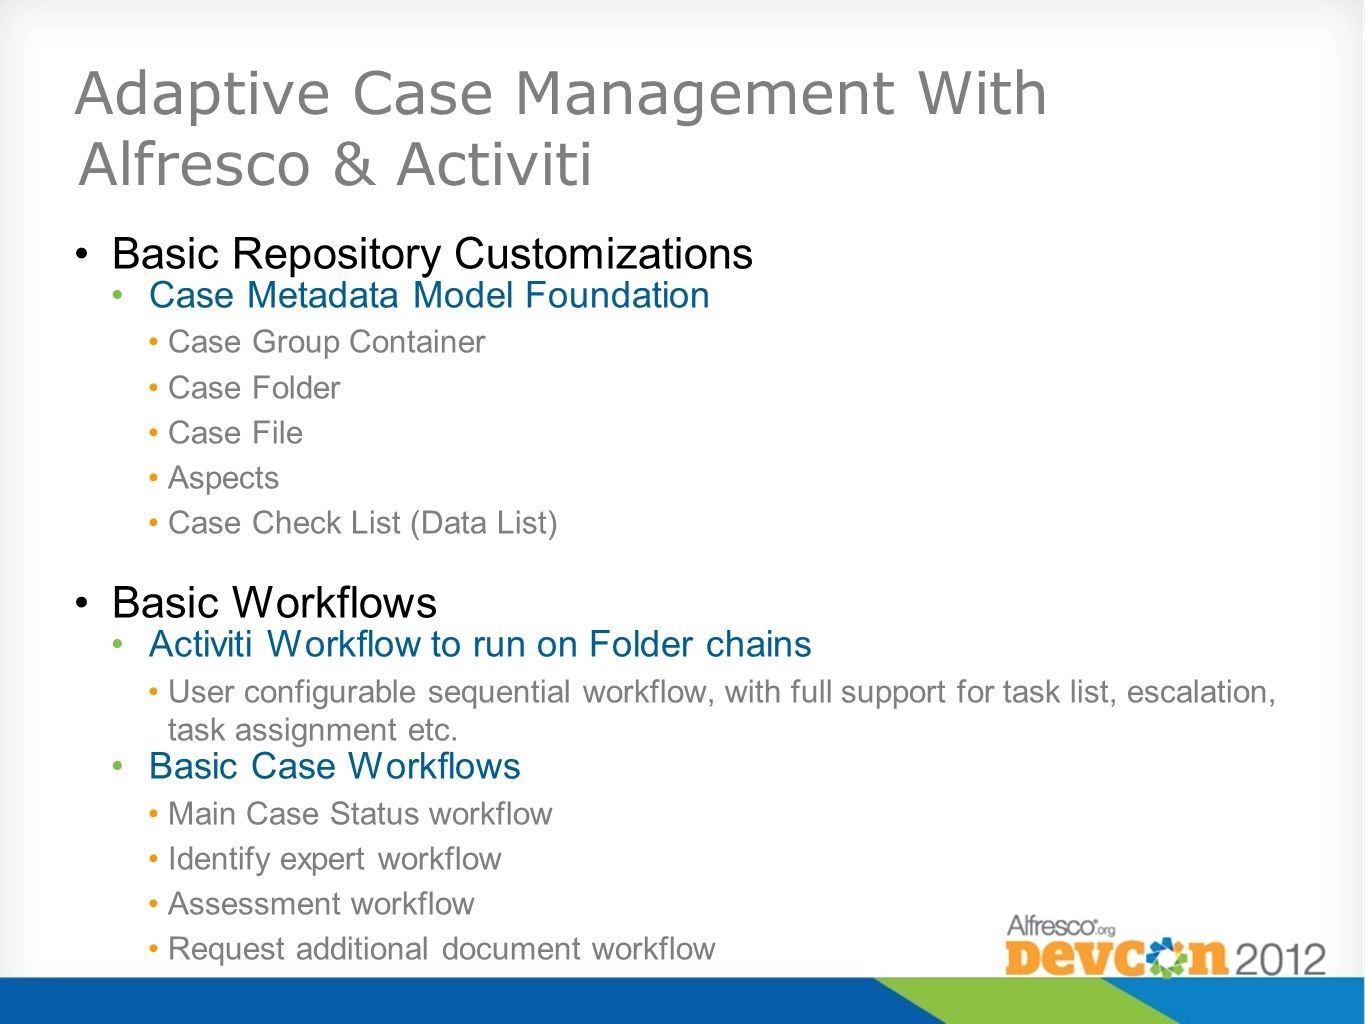 Adaptive Case Management With Alfresco & Activiti